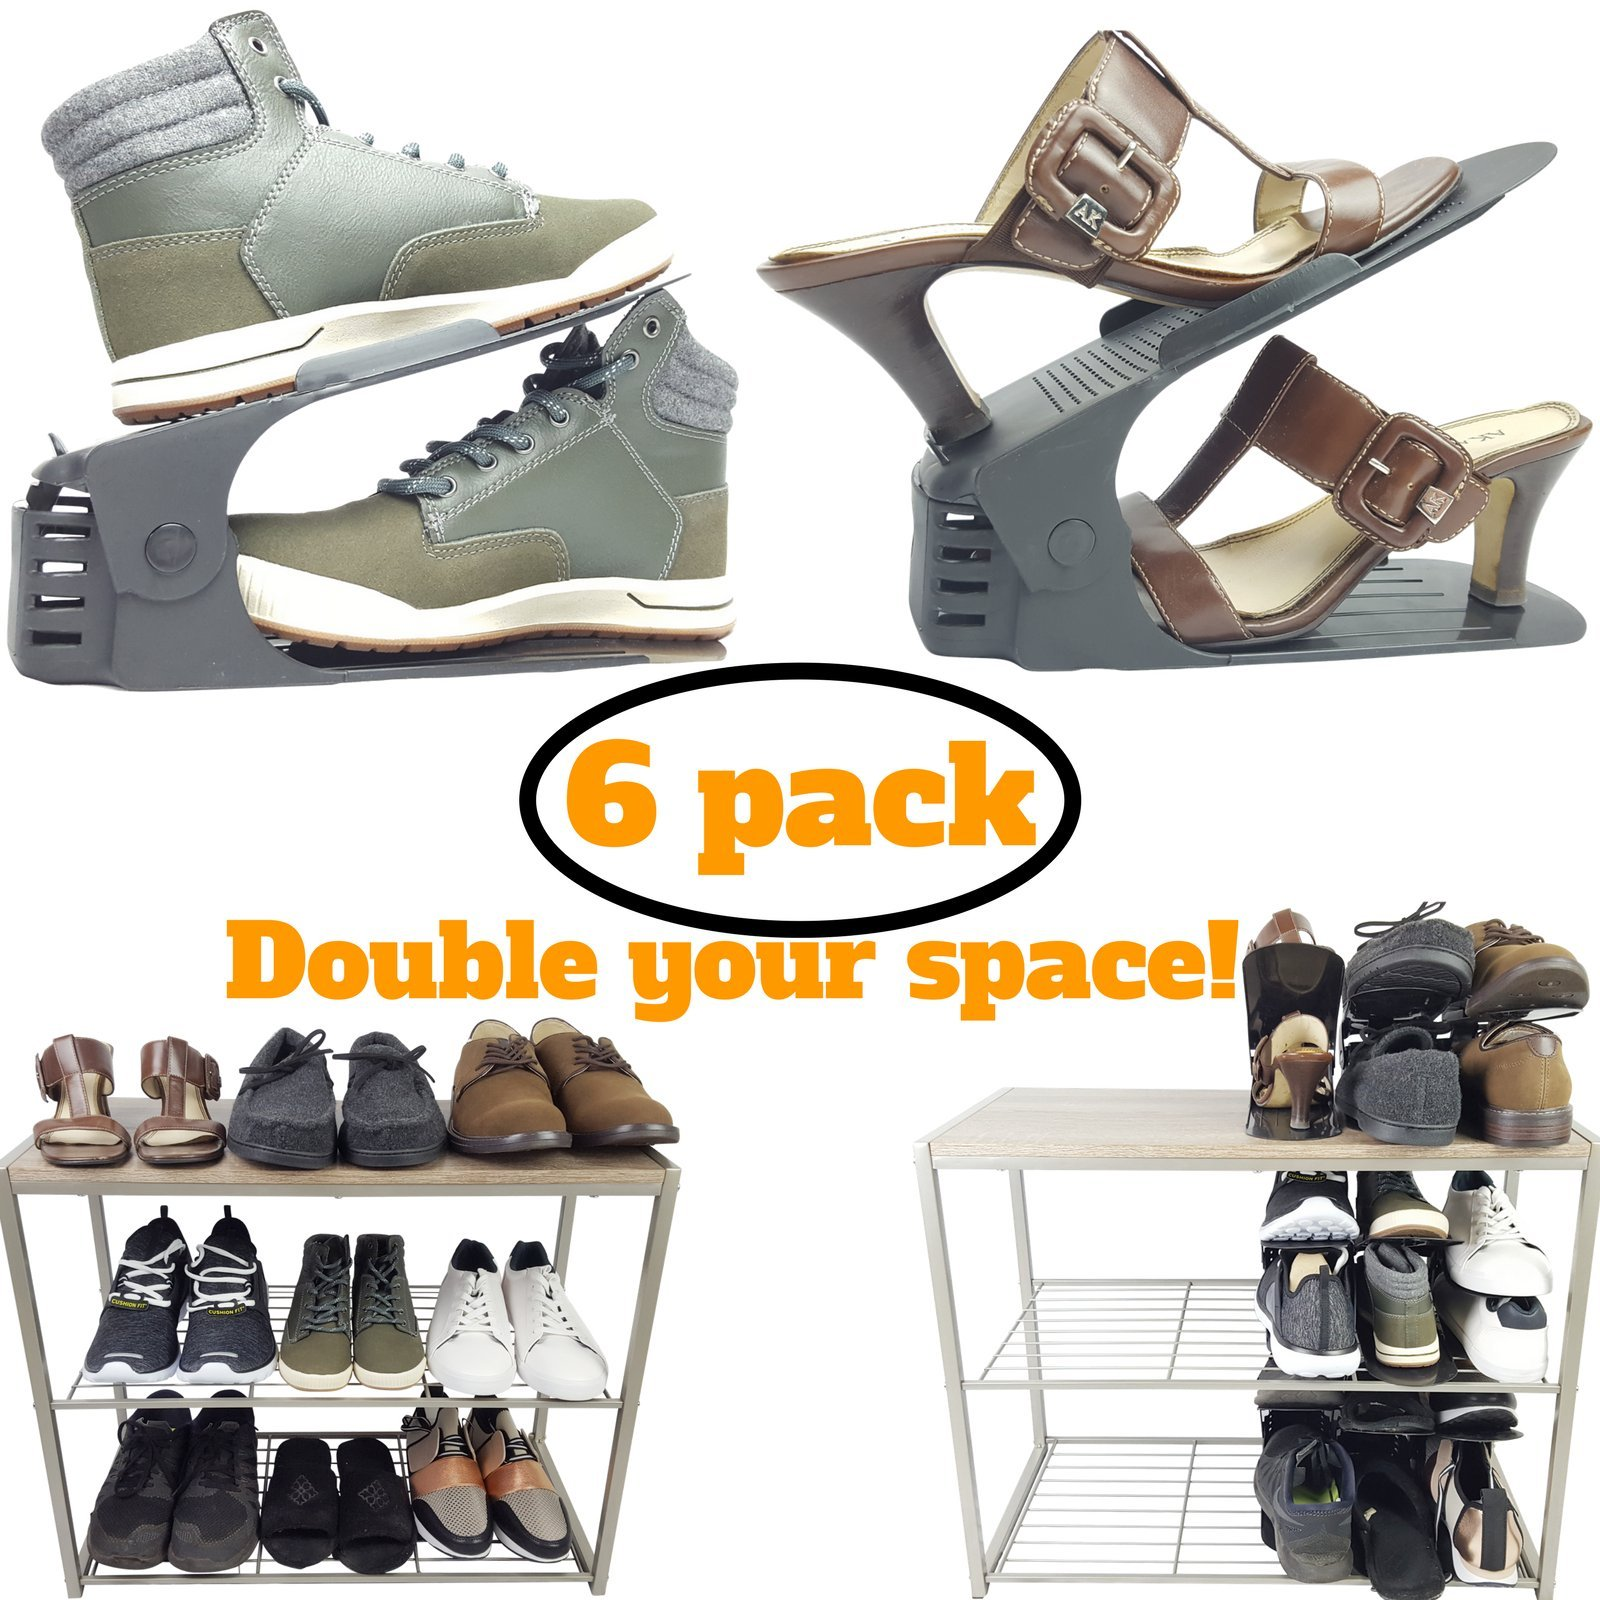 Modest Home - Shoe Stacker - 6 pack, Black Adjustable Shoe Organizer and Space Saver For Closet Organization, Kids Room, and Shoe Slots Storage.